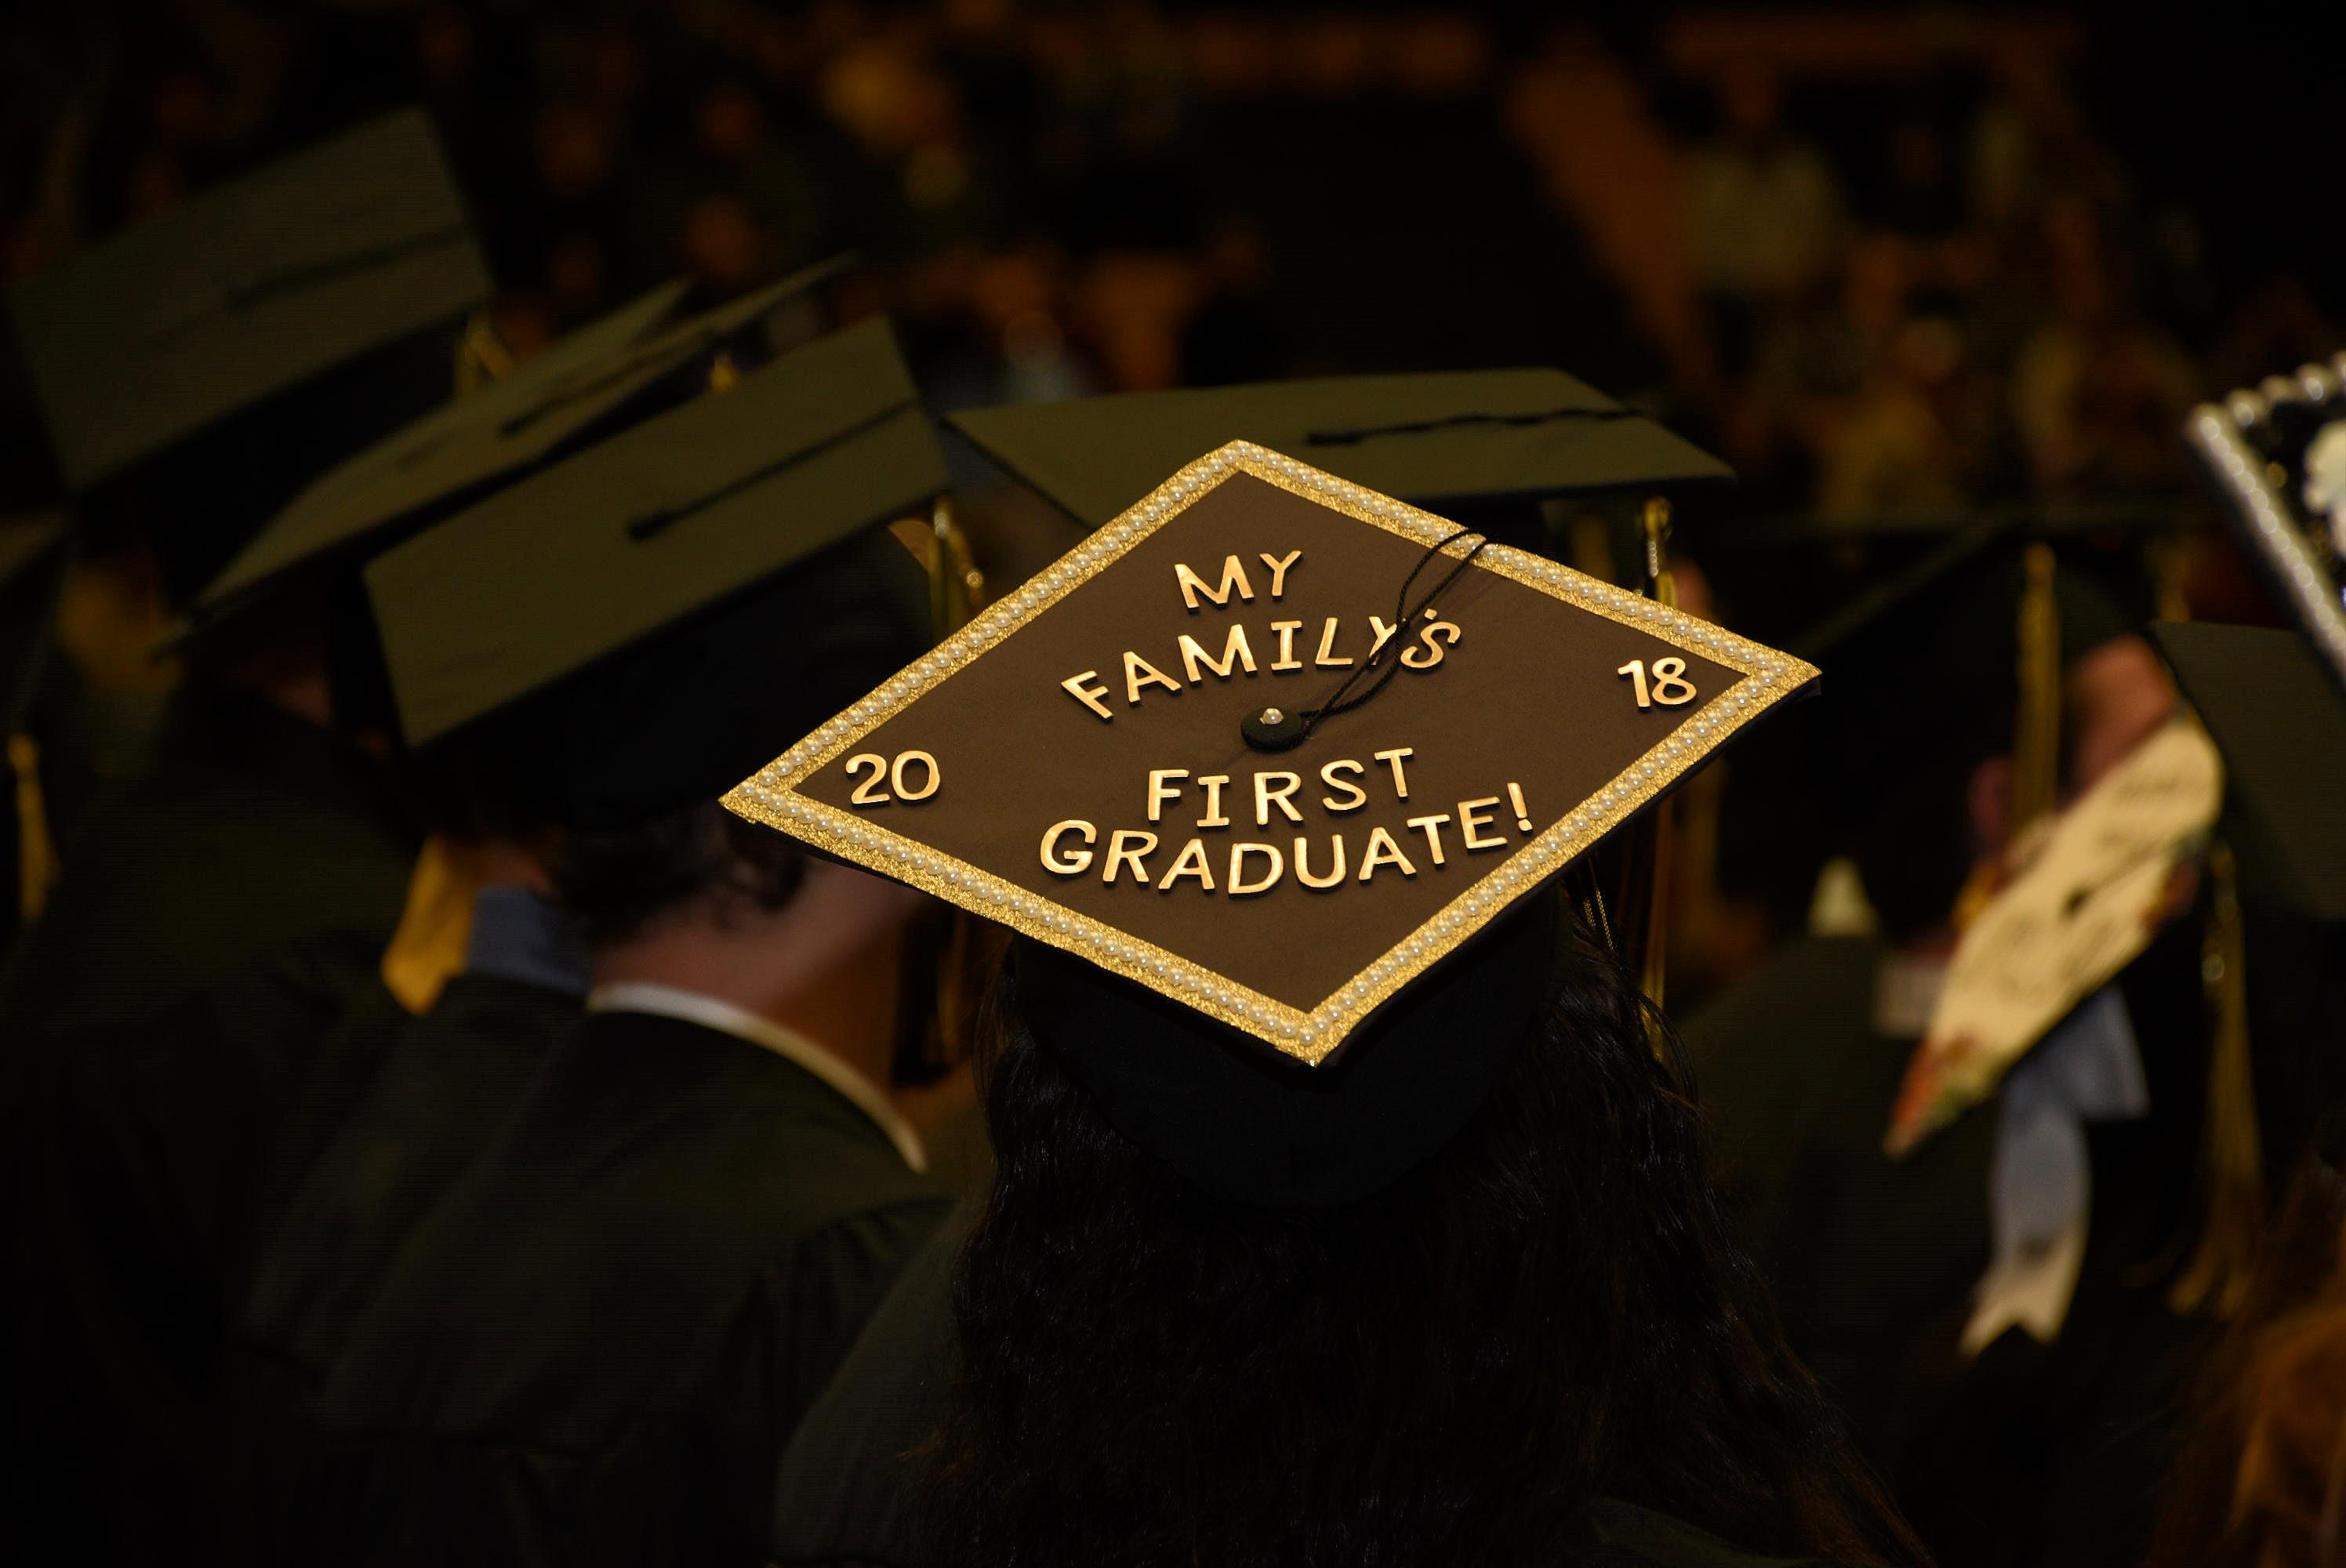 """Graduation cap that says """"My family's first graduate 2018"""""""